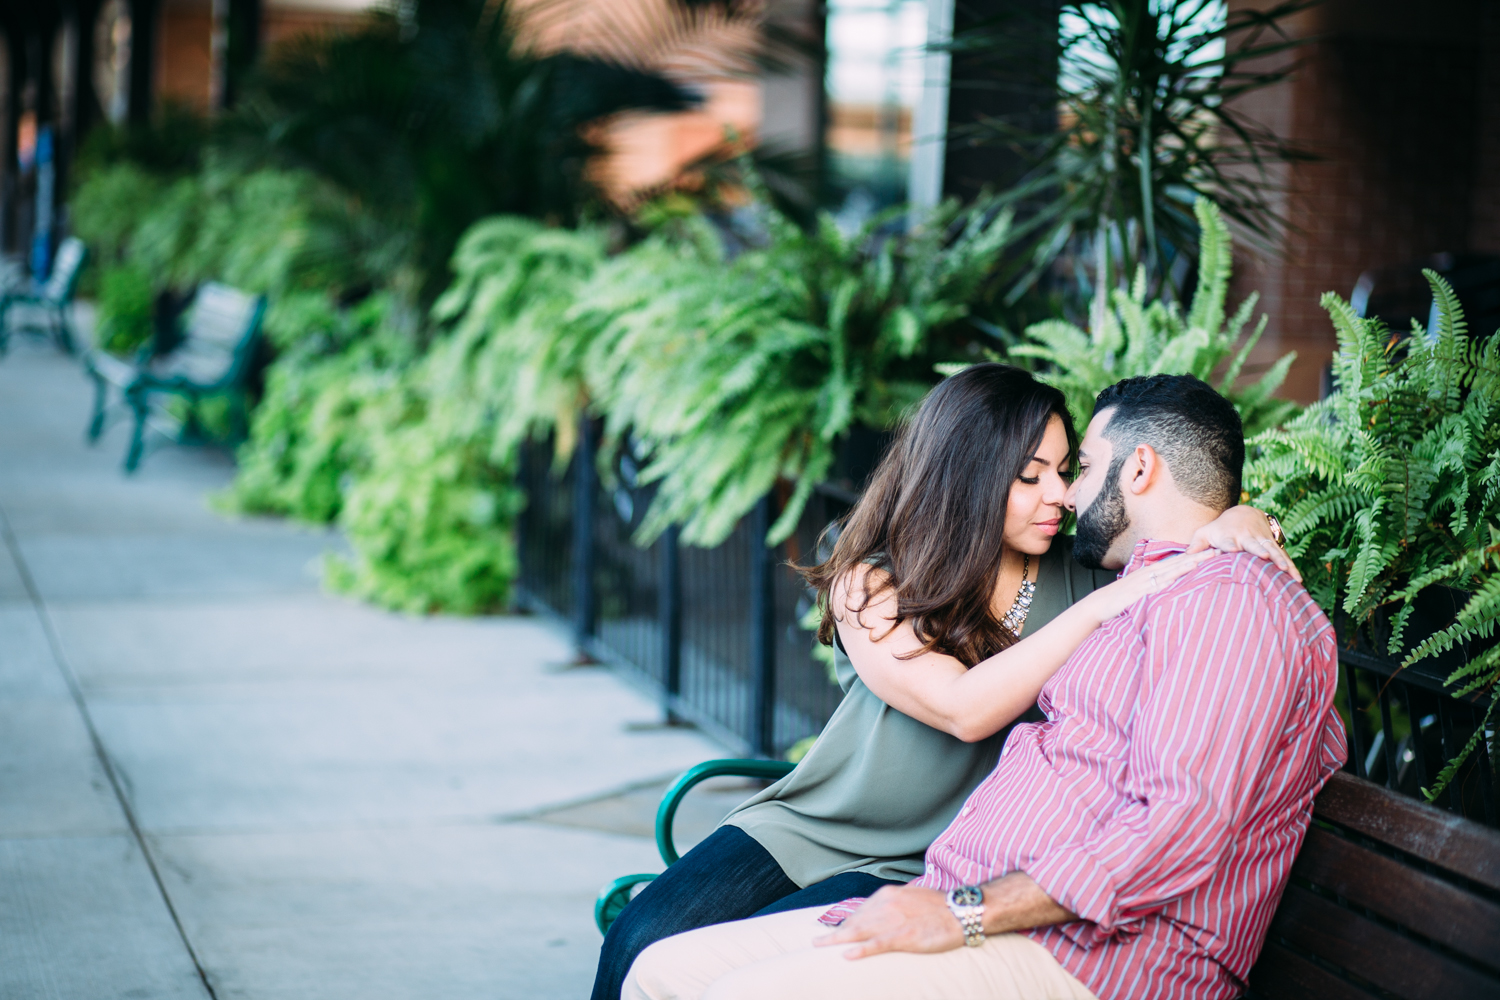 Ashley-reed-photography-pittsburgh-engagement-engagementphotography-engagementphotographer-stationsquare-statio-square-pittsburghengagementphotography-35.jpg